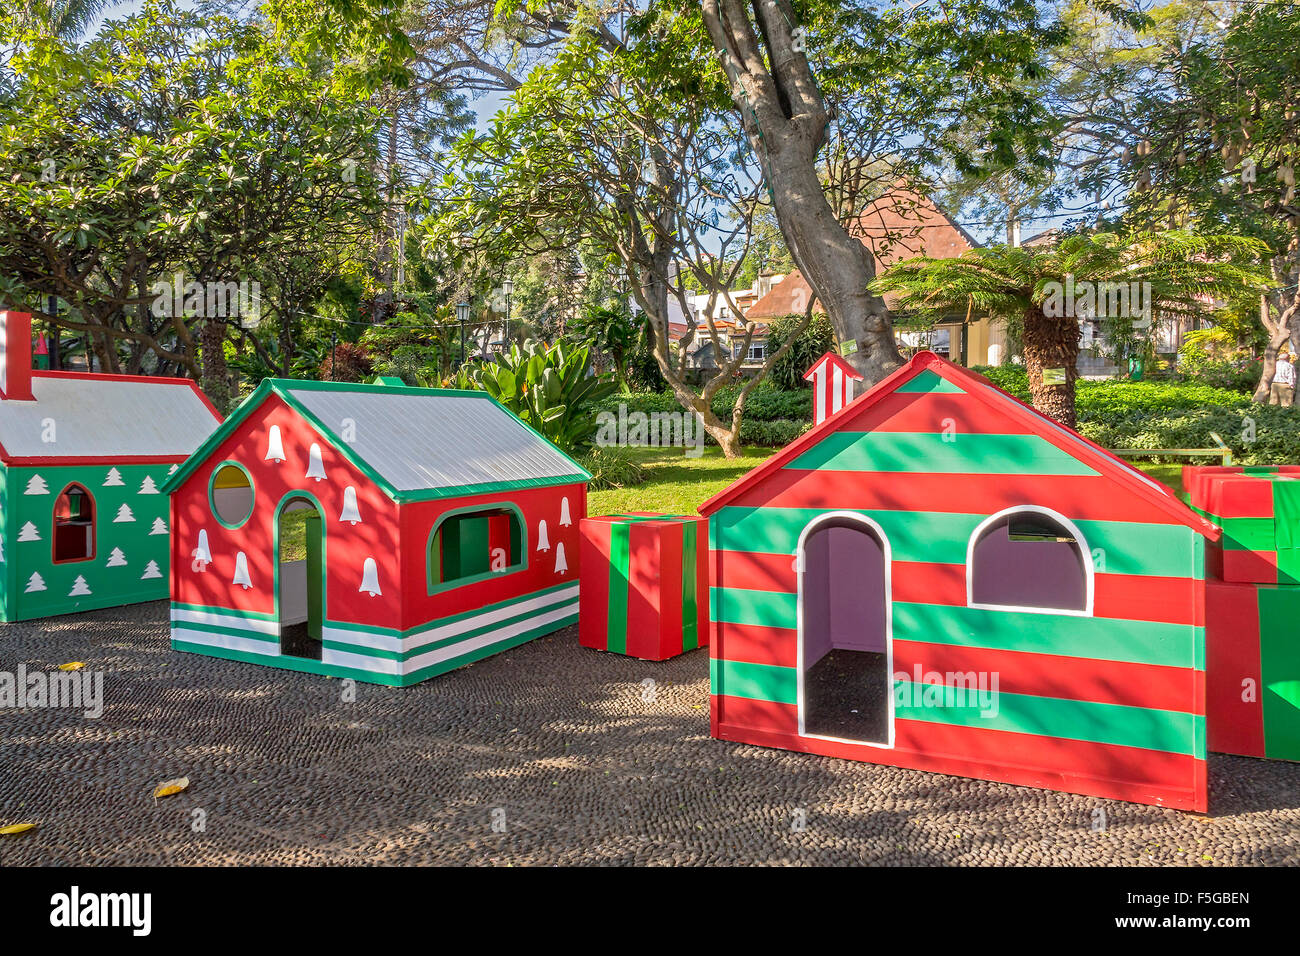 Childrens Play Houses Funchal Madeira Portugal - Stock Image